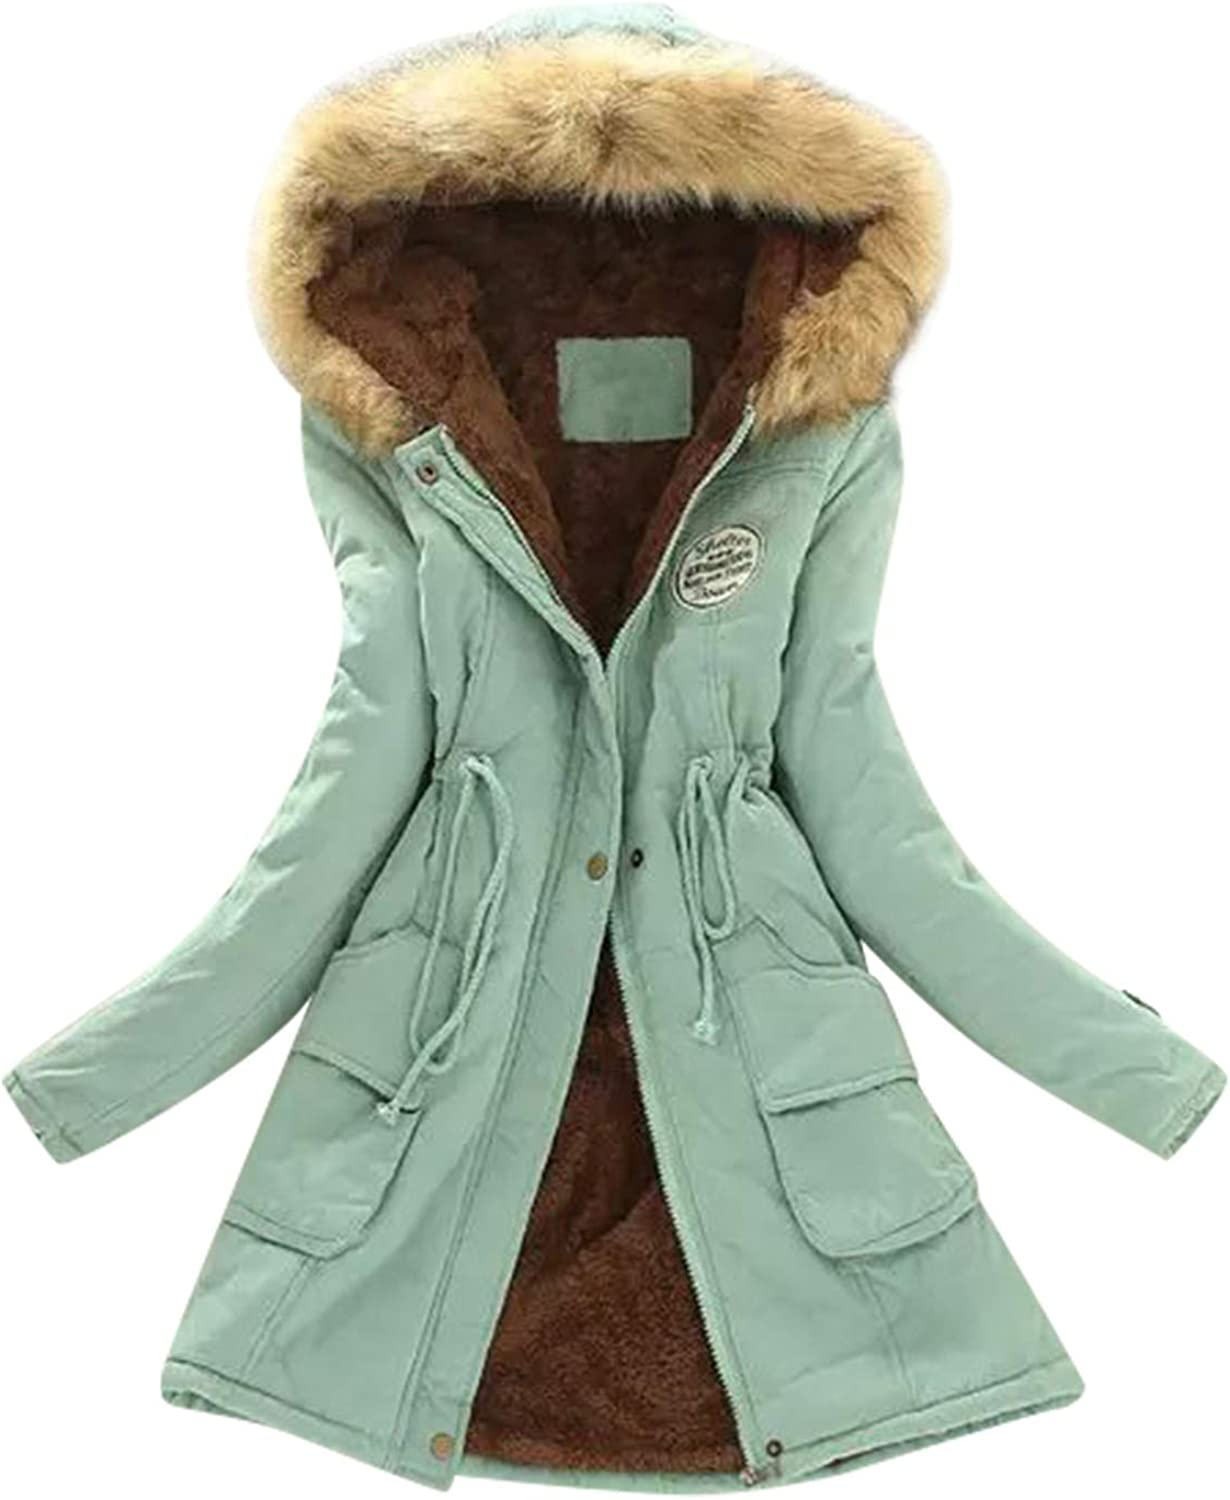 Qinnyo Jacket Winter Coats for Women Hooded Warm Winter Parka Thicken Fleece Lined Parkas Long Coats with Fur Trim: Clothing